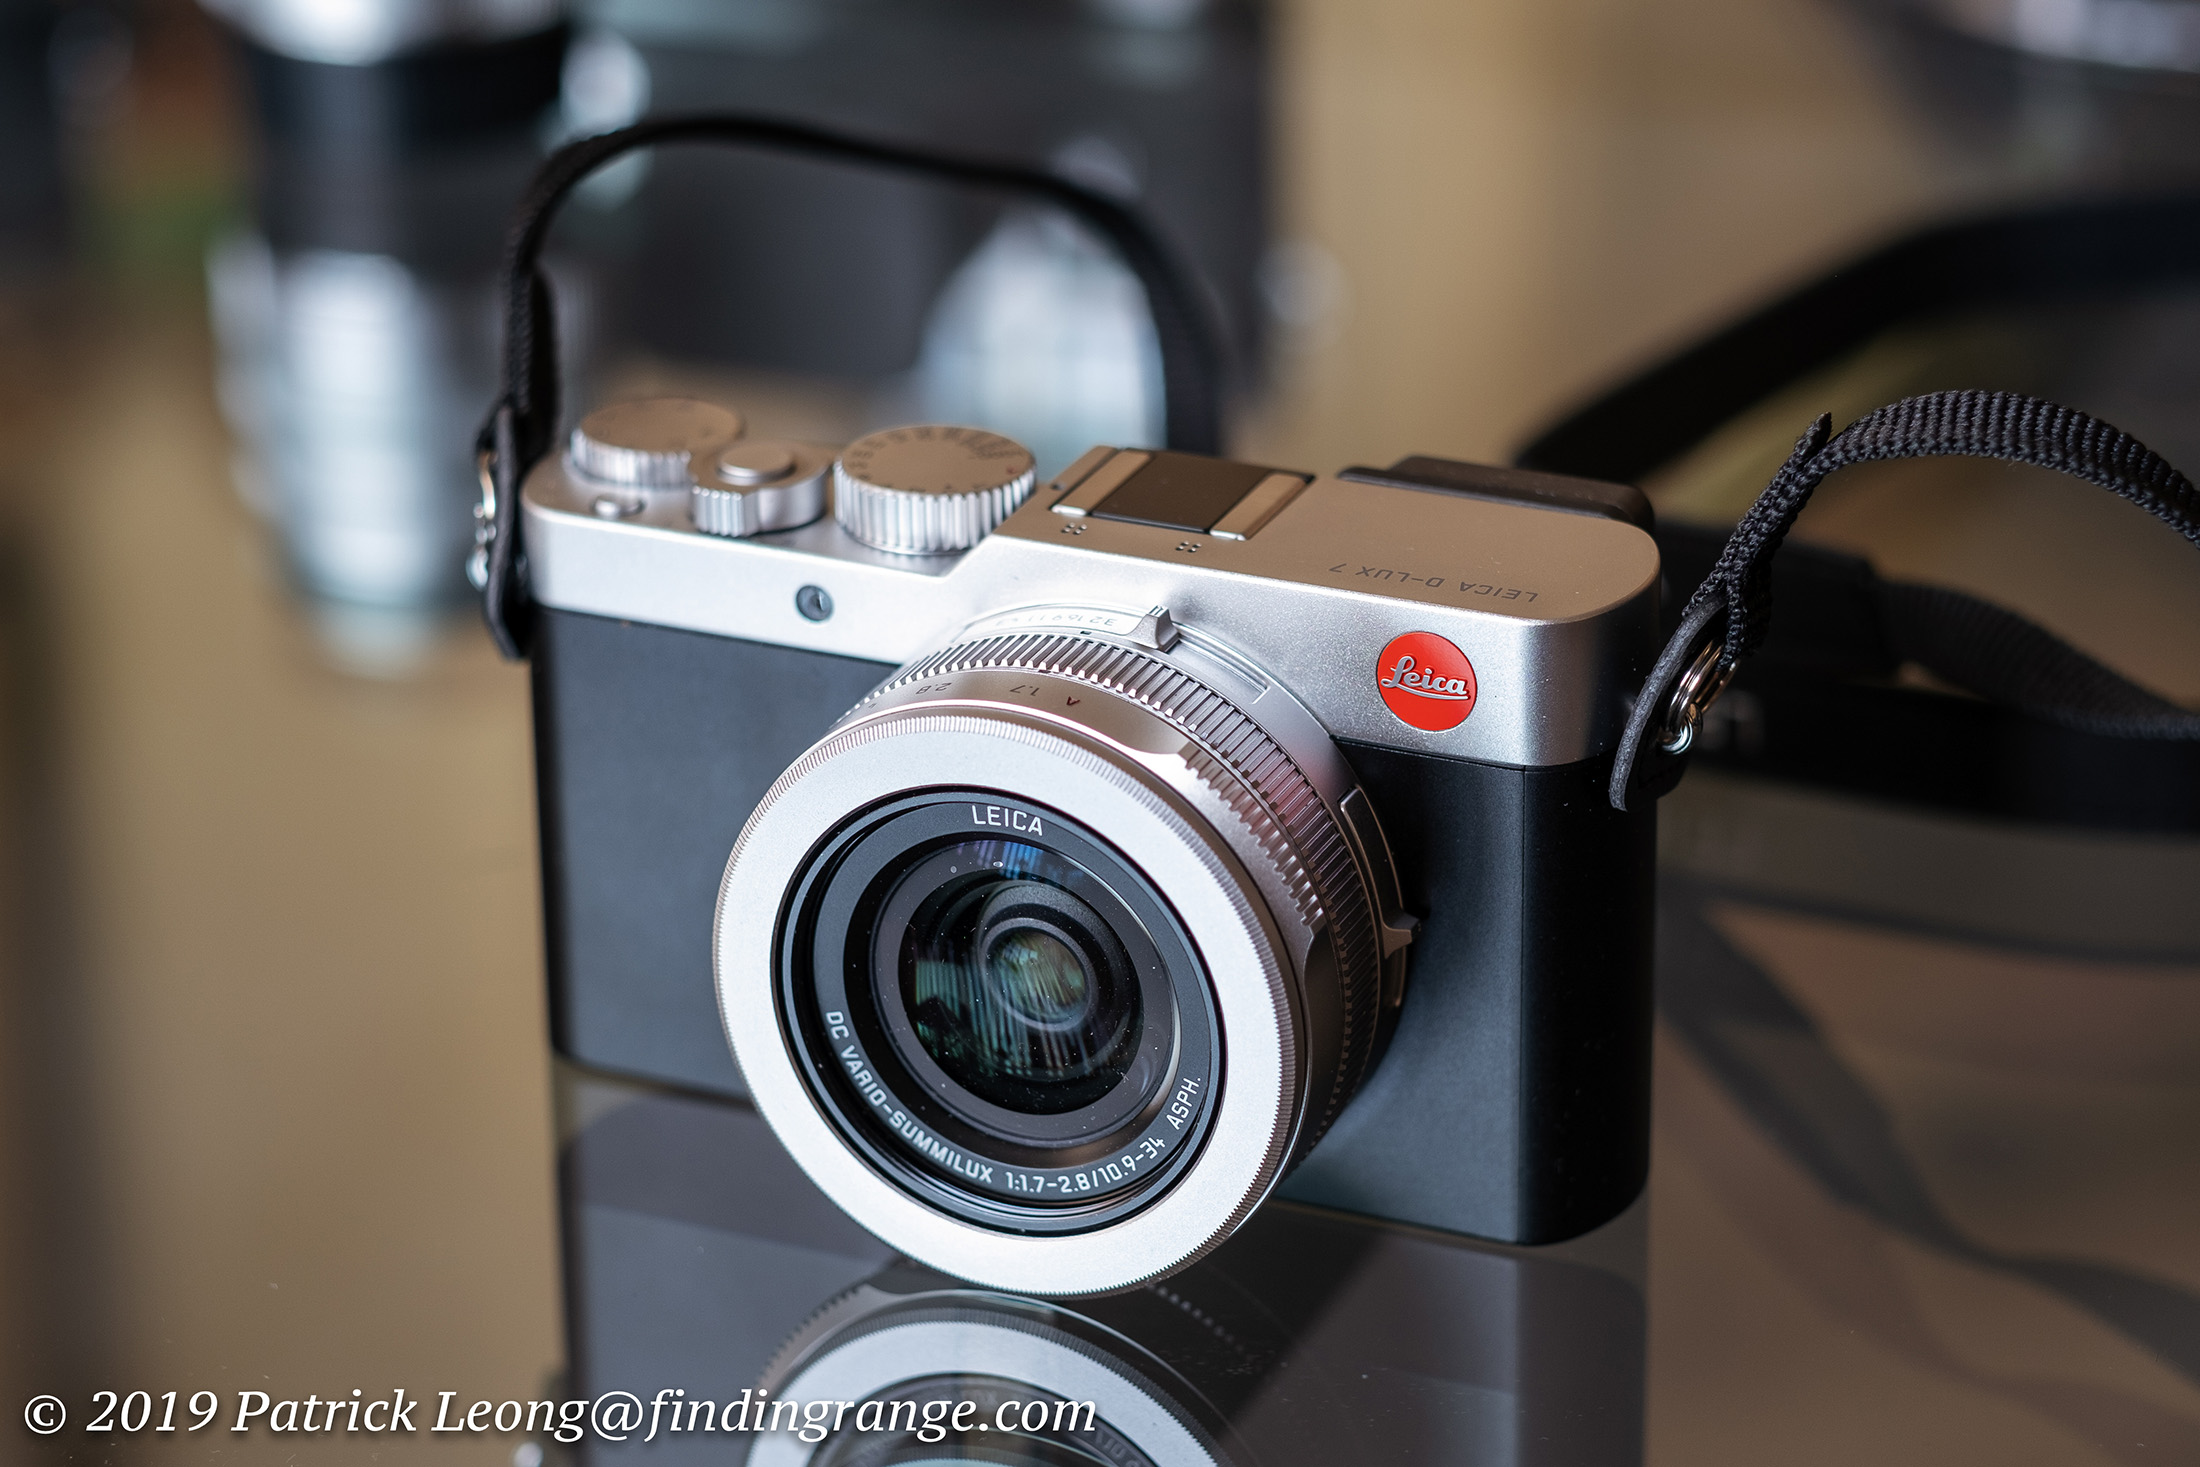 Leica D Lux 7 Compact Camera Review